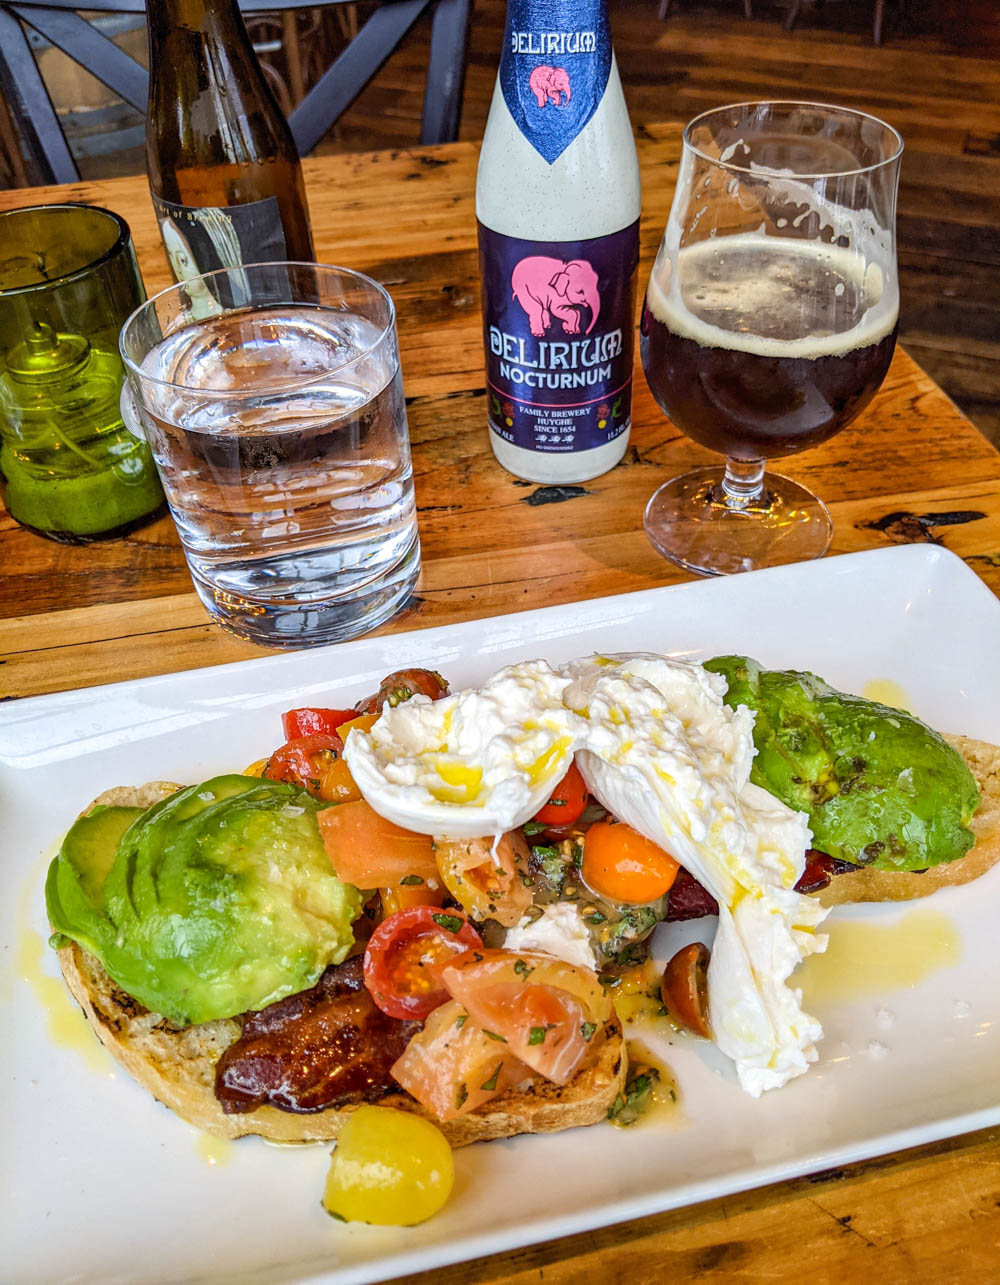 fancy brunch plate and dark beer - things to do in orlando besides theme parks